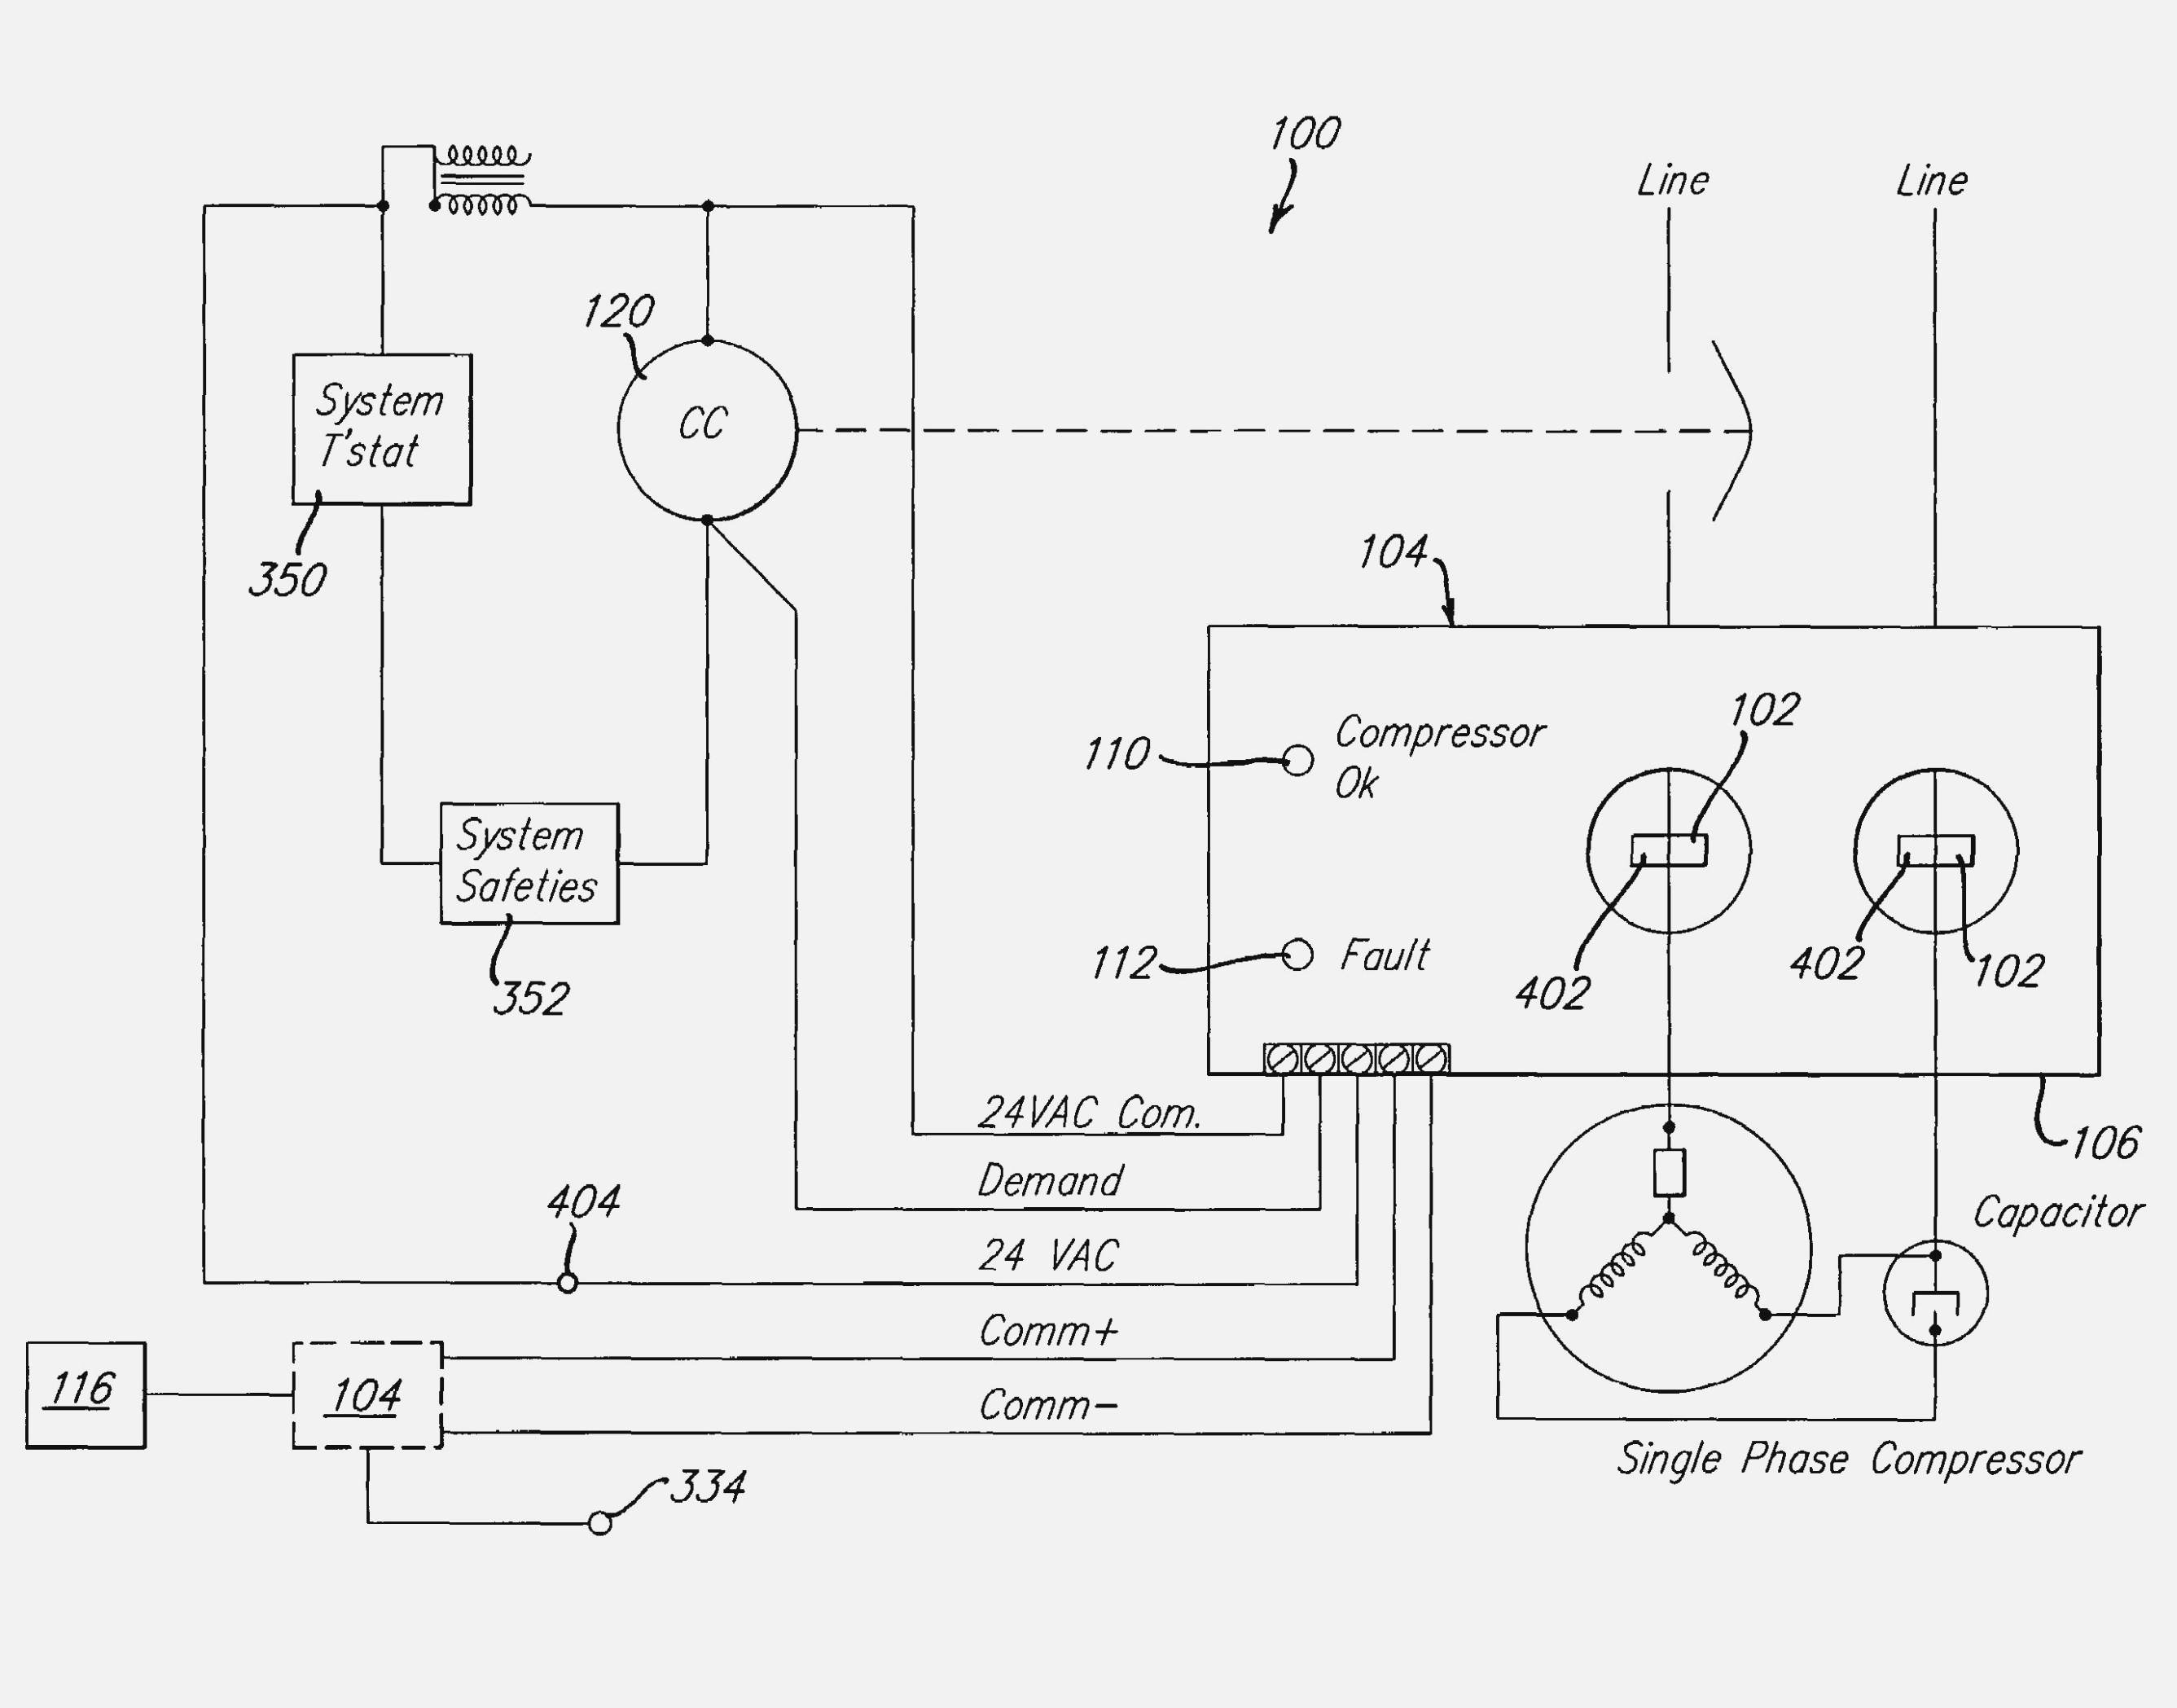 Embraco Compressor Start Capacitor Wiring | Manual E-Books - Embraco Compressor Wiring Diagram